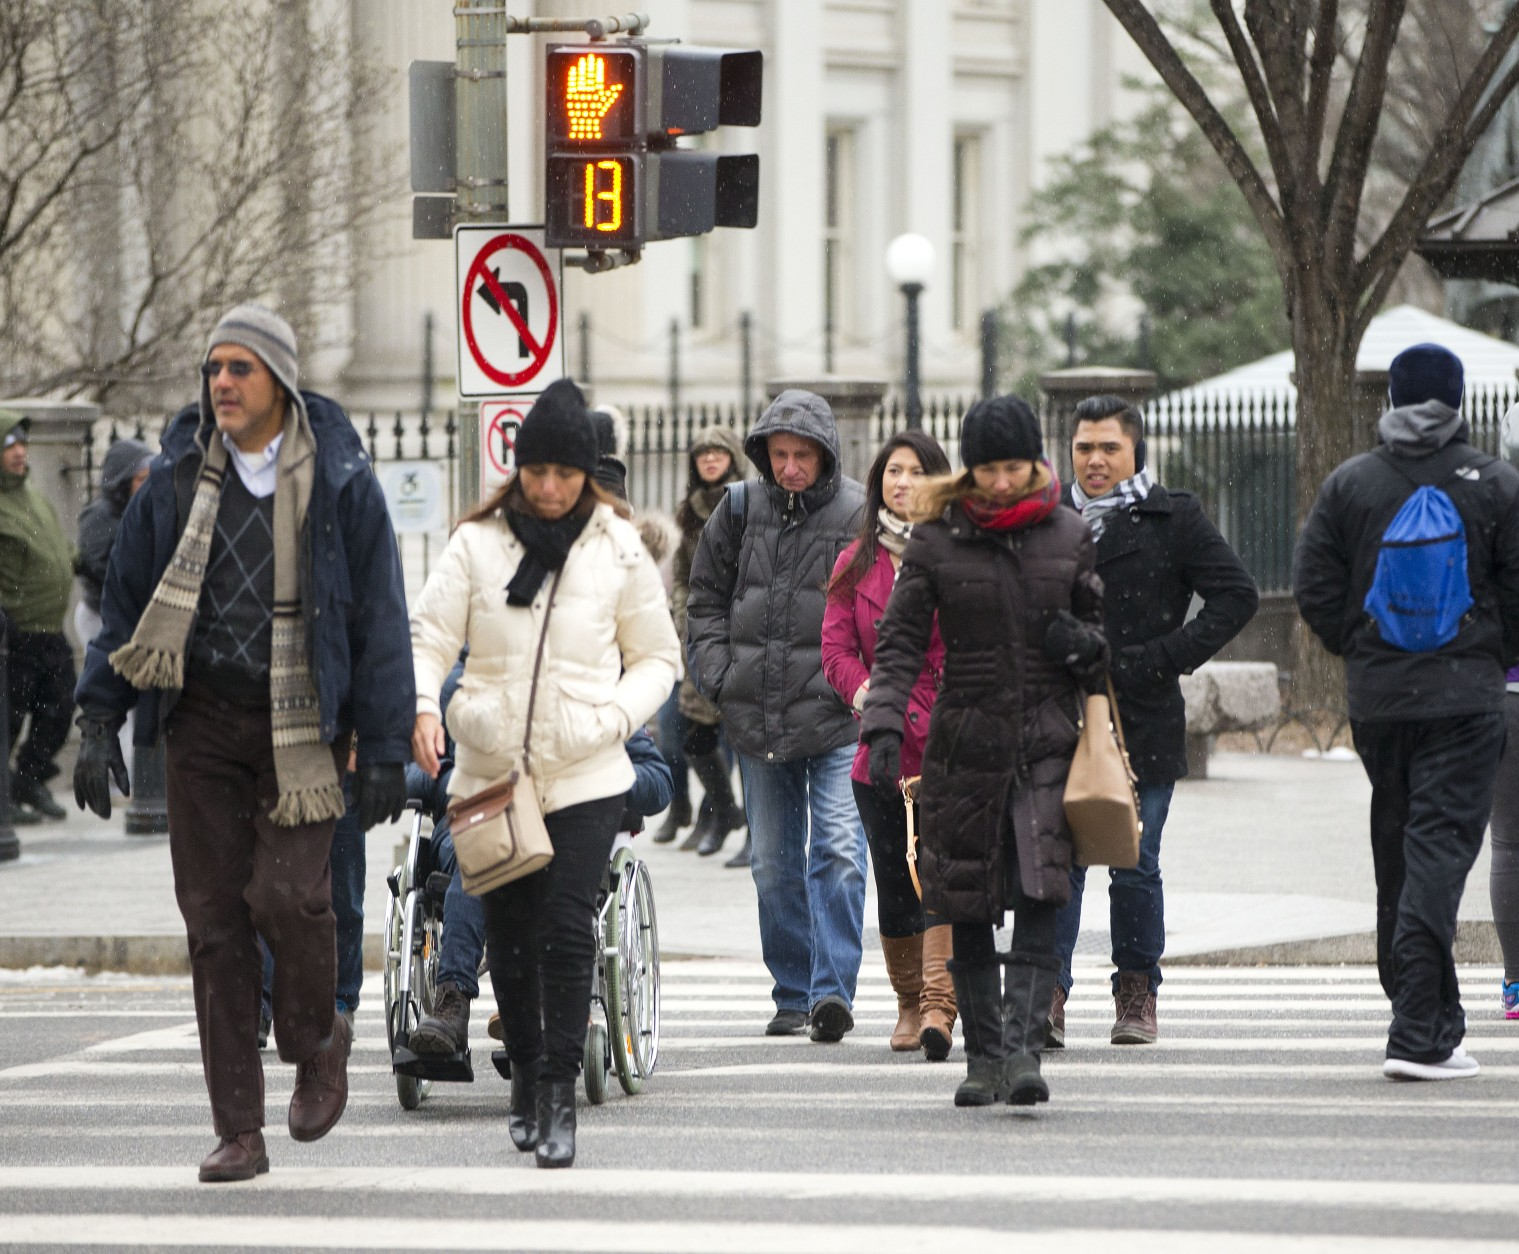 Pedestrians cross 15th Street in downtown Washington near the White House, Friday, Jan. 22, 2016, as the Nation's Capital hunkers down in preparation for a major snowstorm expected to begin later today. Food and supplies vanished from store shelves, five states and the District of Columbia declared states of emergency ahead of the slow-moving system. (AP Photo/Pablo Martinez Monsivais)